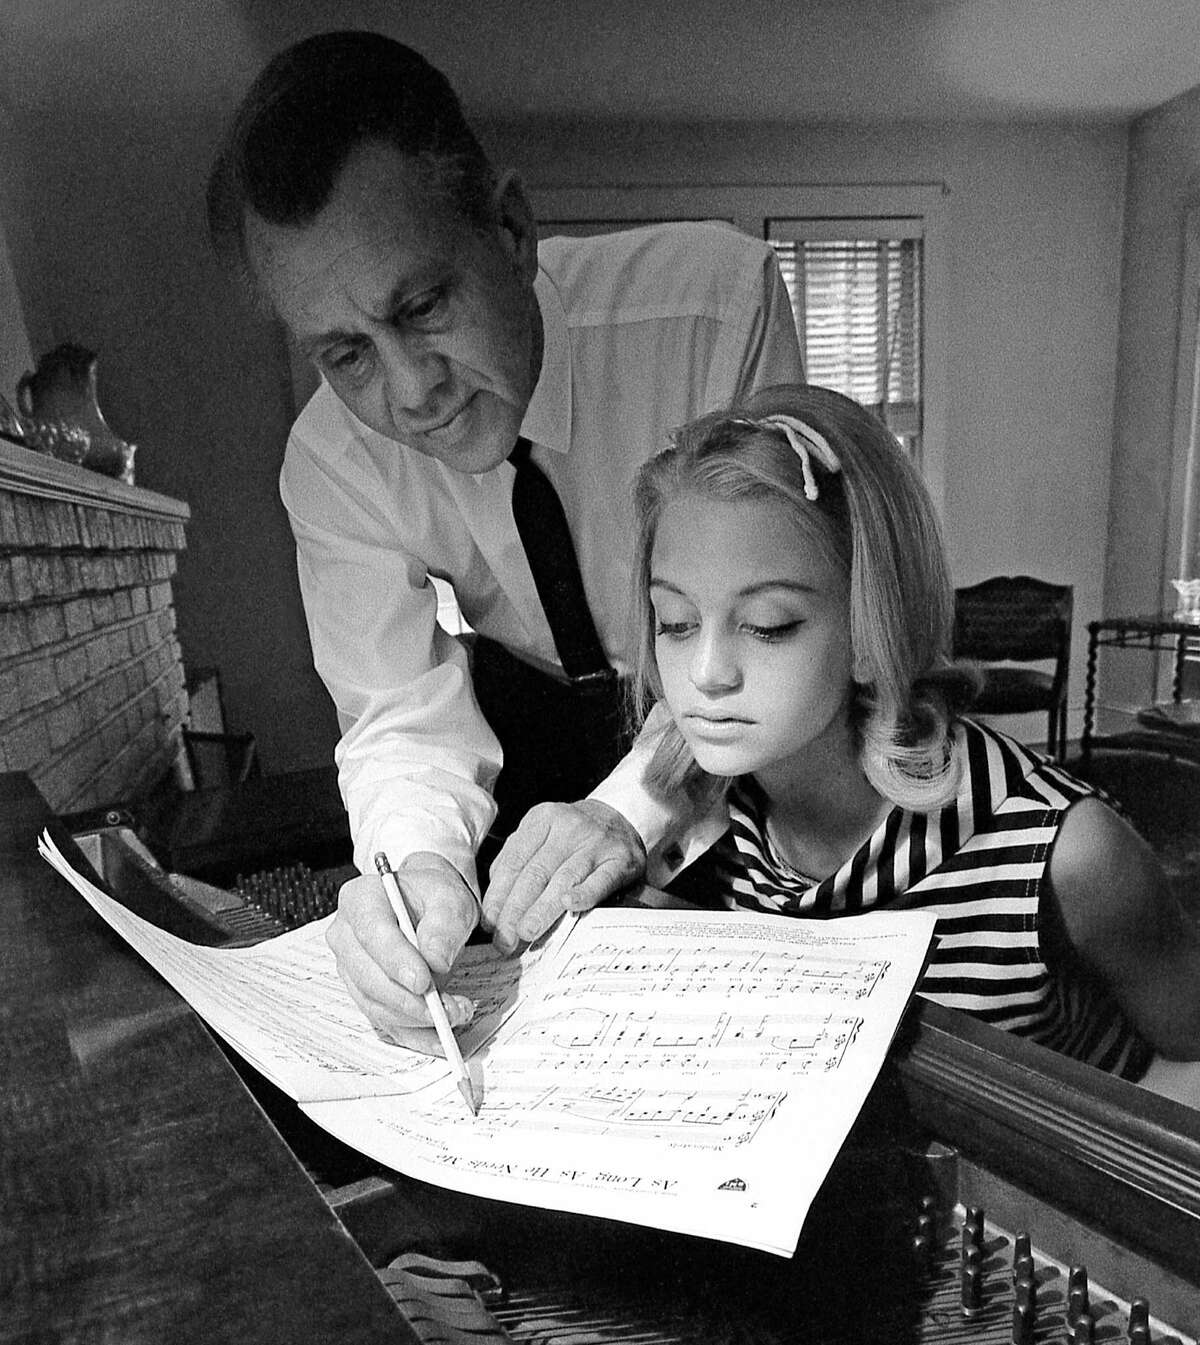 Goldie Hawn, born Nov. 21, 1945 in our nation's capital, grew up under the tutelage of her musician father and dance instructor mother. Here in 1960, at the piano with her father, musician and bandleader Edward Rutledge Hawn, the future dancer and actress looks over sheet music for